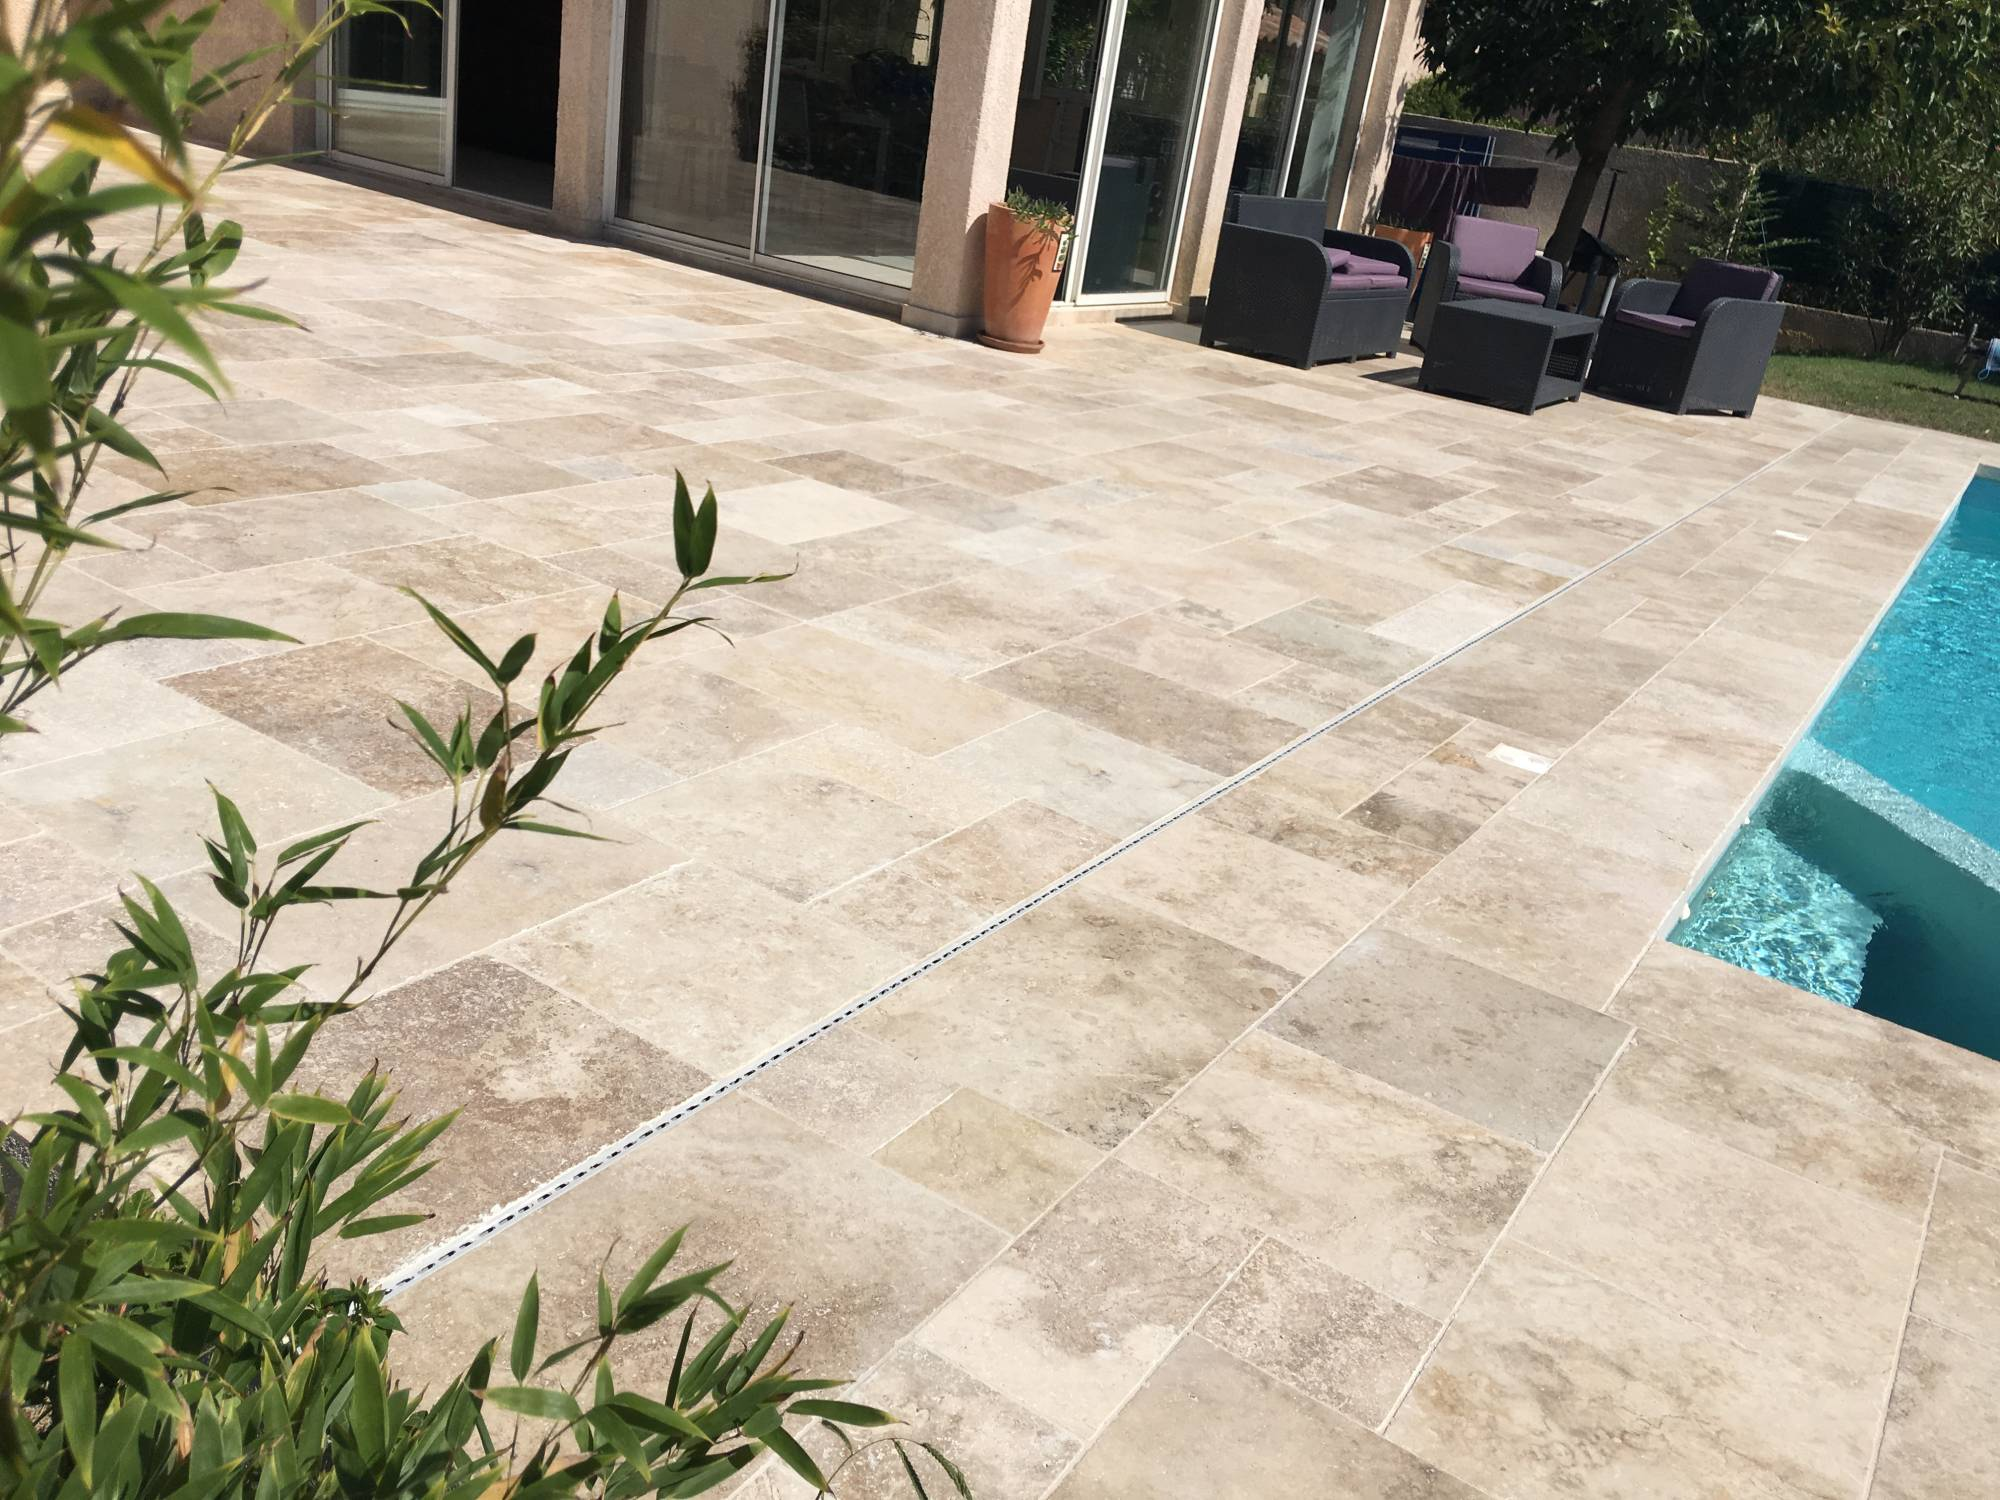 Piscine en travertin carrelage int rieur et ext rieur for Carrelage interieur piscine